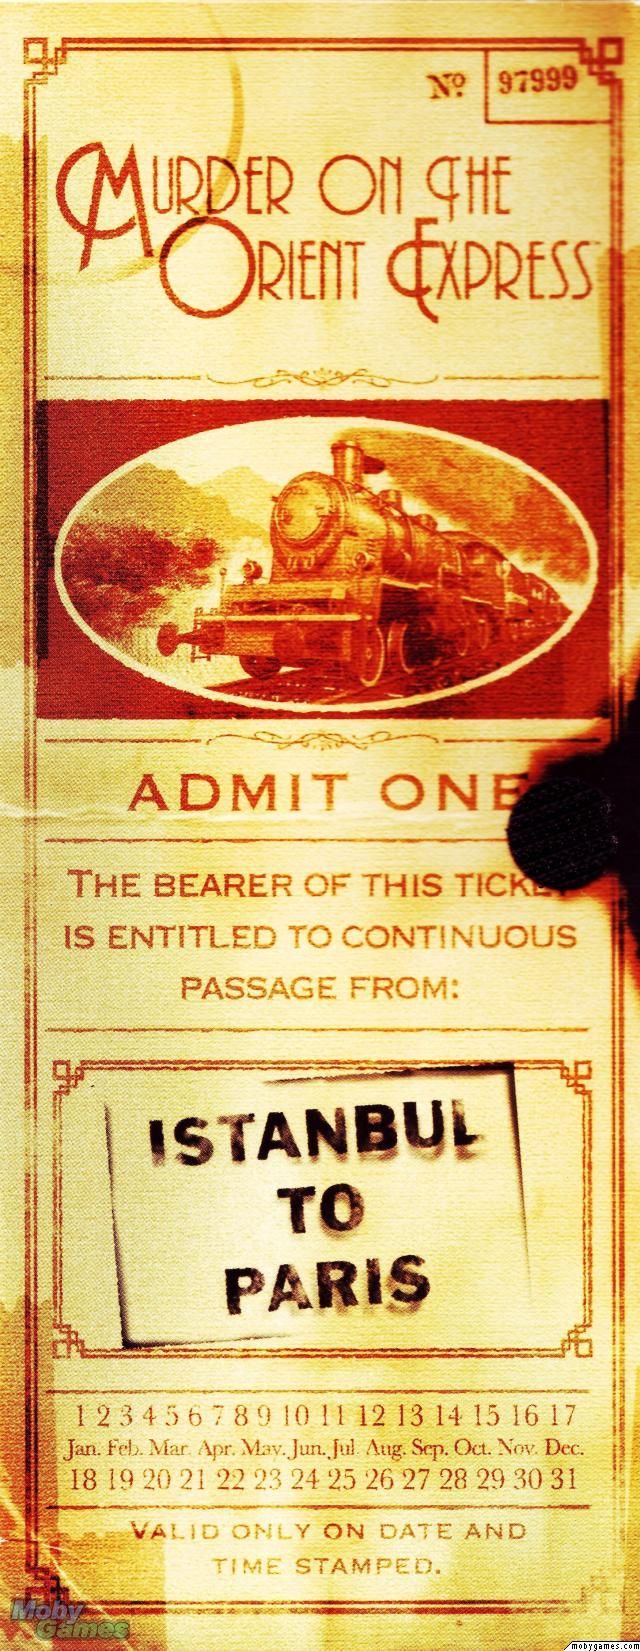 I bought this book on our trip from Venice to Paris on the Orient Express! awesome memories.